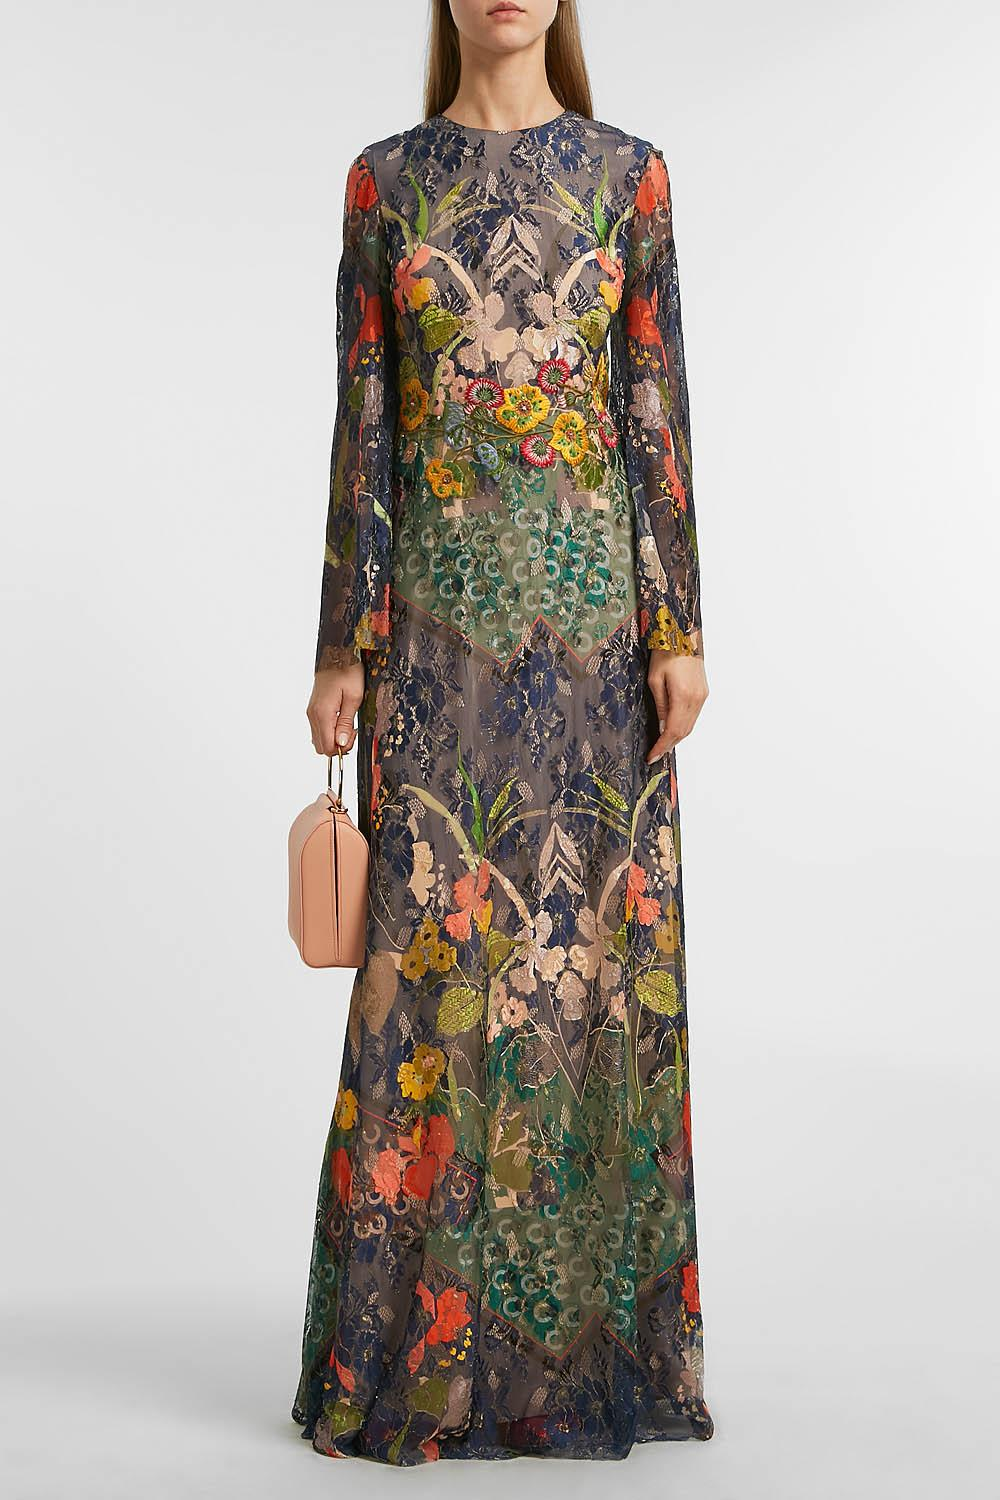 REEM ACRA EMBROIDERED LACE GOWN, SIZE US8, WOMEN